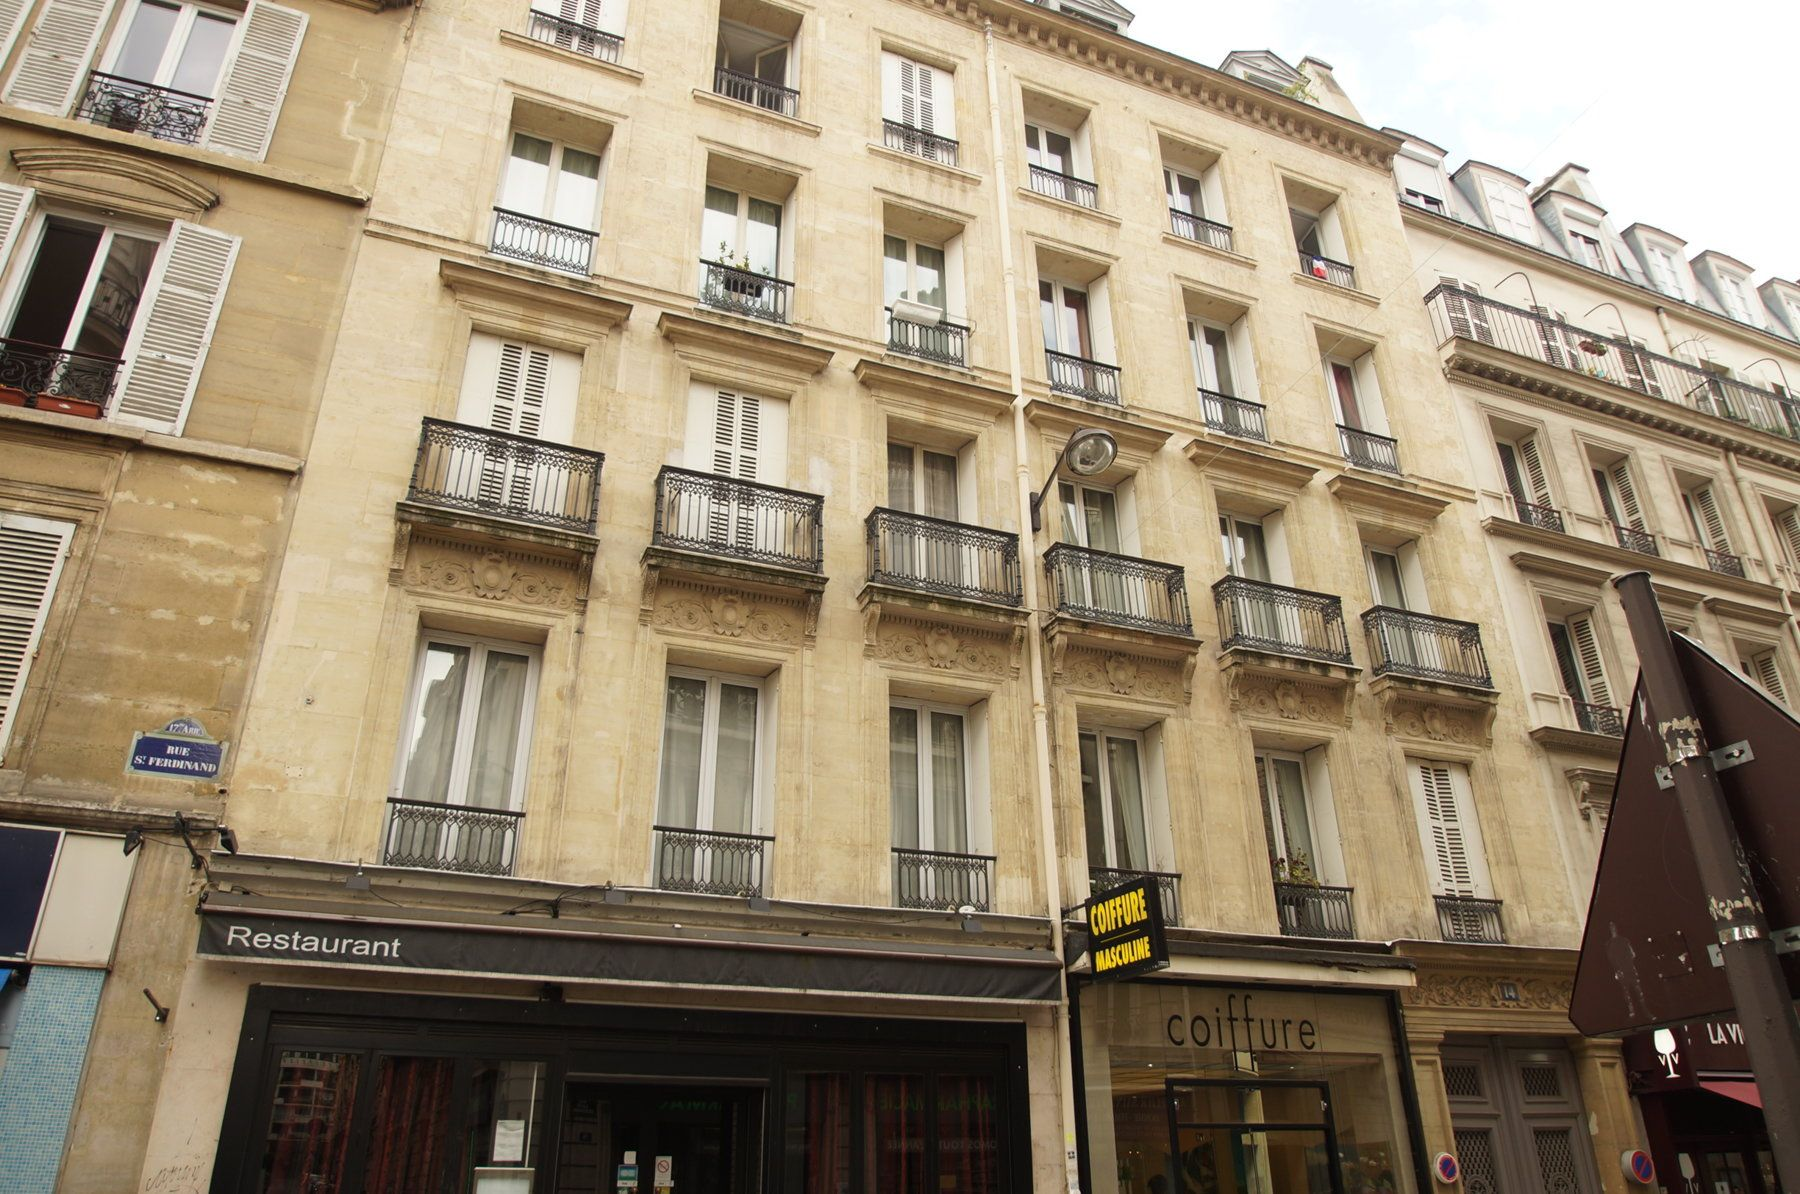 14 rue saint ferdinand 75017 paris estimation immobi for 5 rue belidor 75017 paris